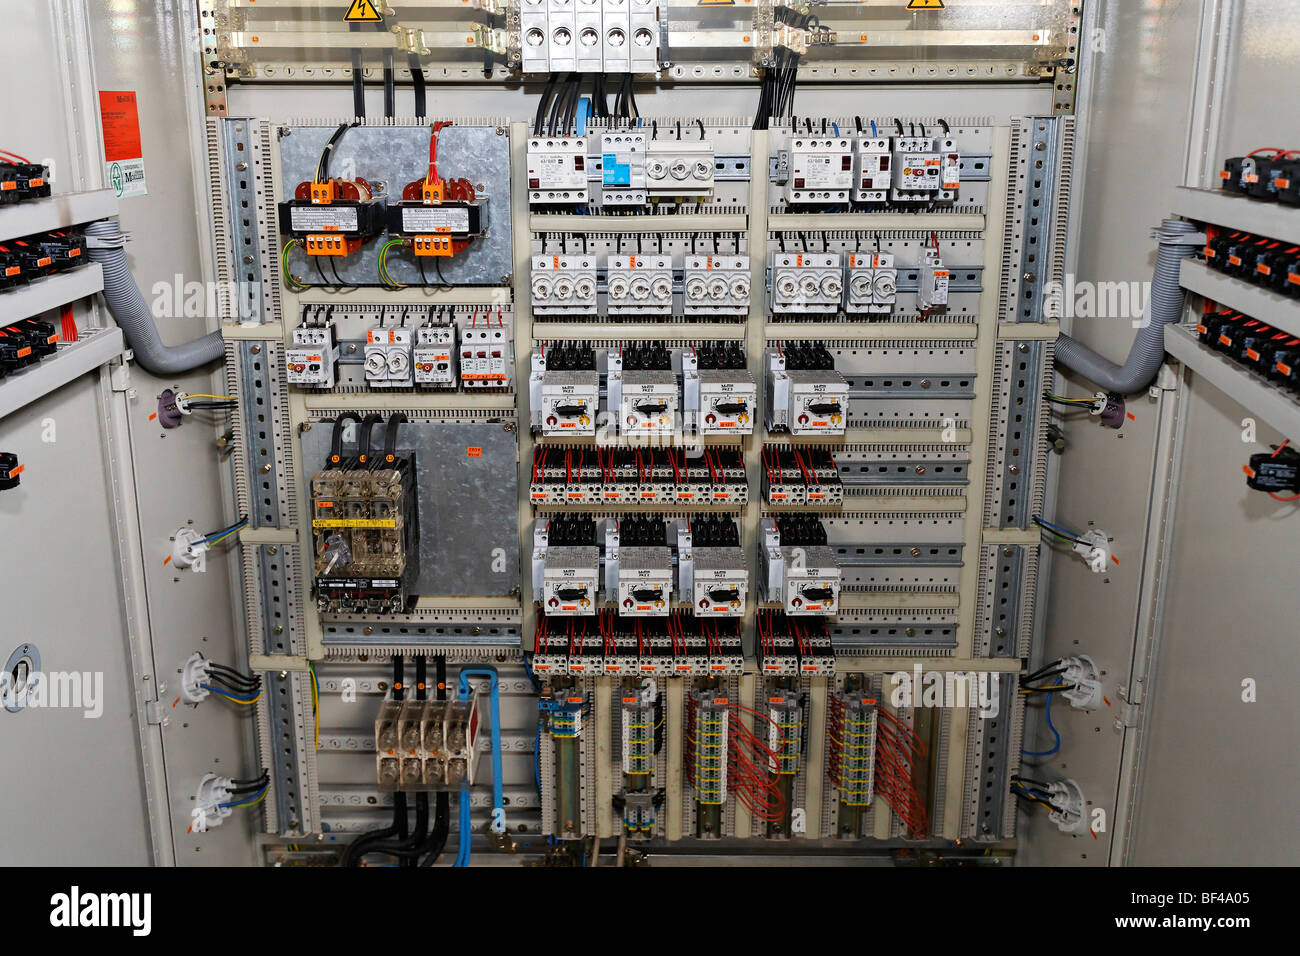 Fuse box, electric control room in a disused factory building, Duisburg-Wedau, North Rhine-Westphalia, Germany, - Stock Image